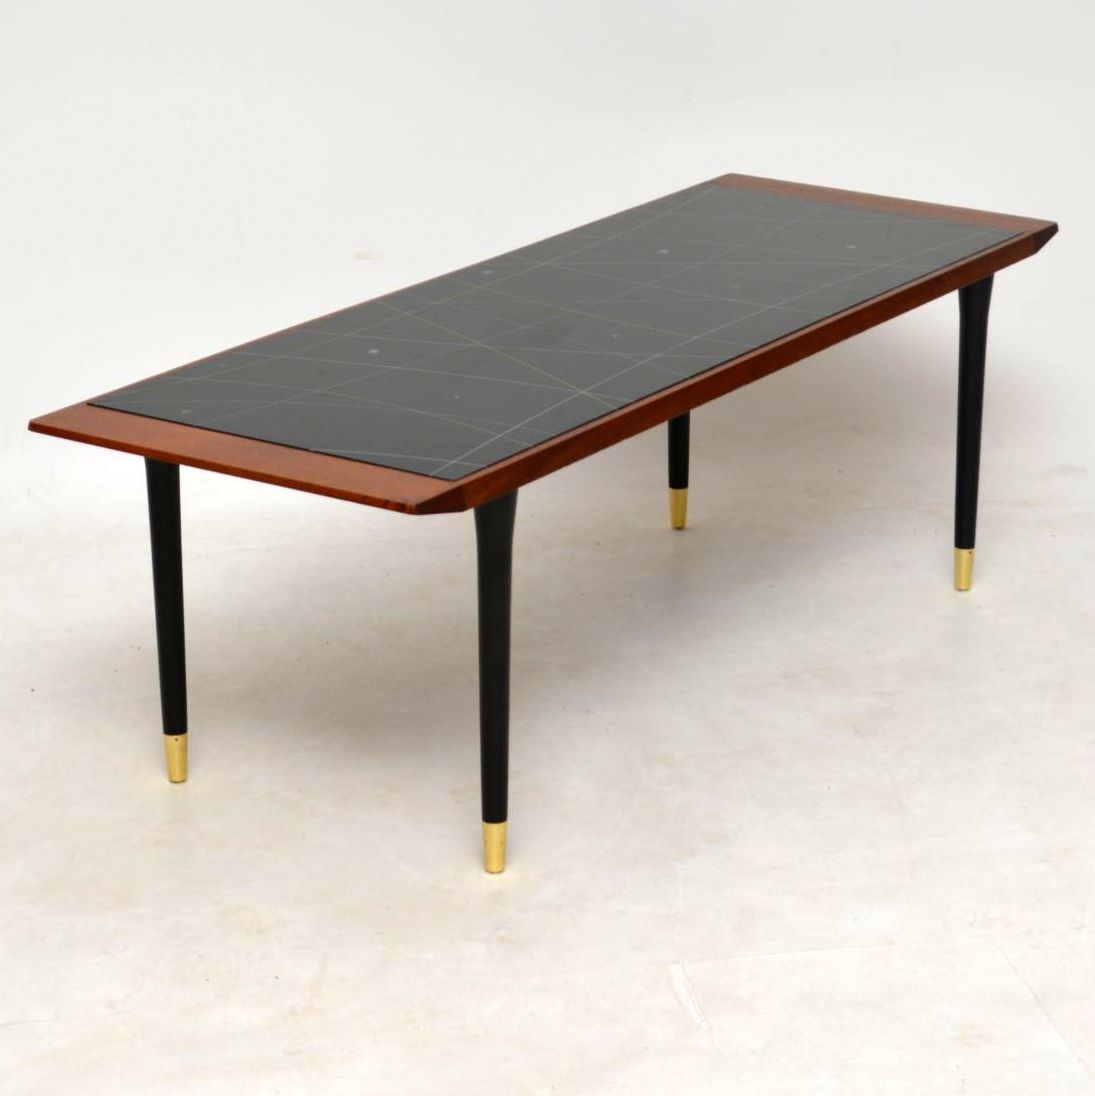 1950's Vintage Teak Glass Top Coffee Table | Retrospective ...